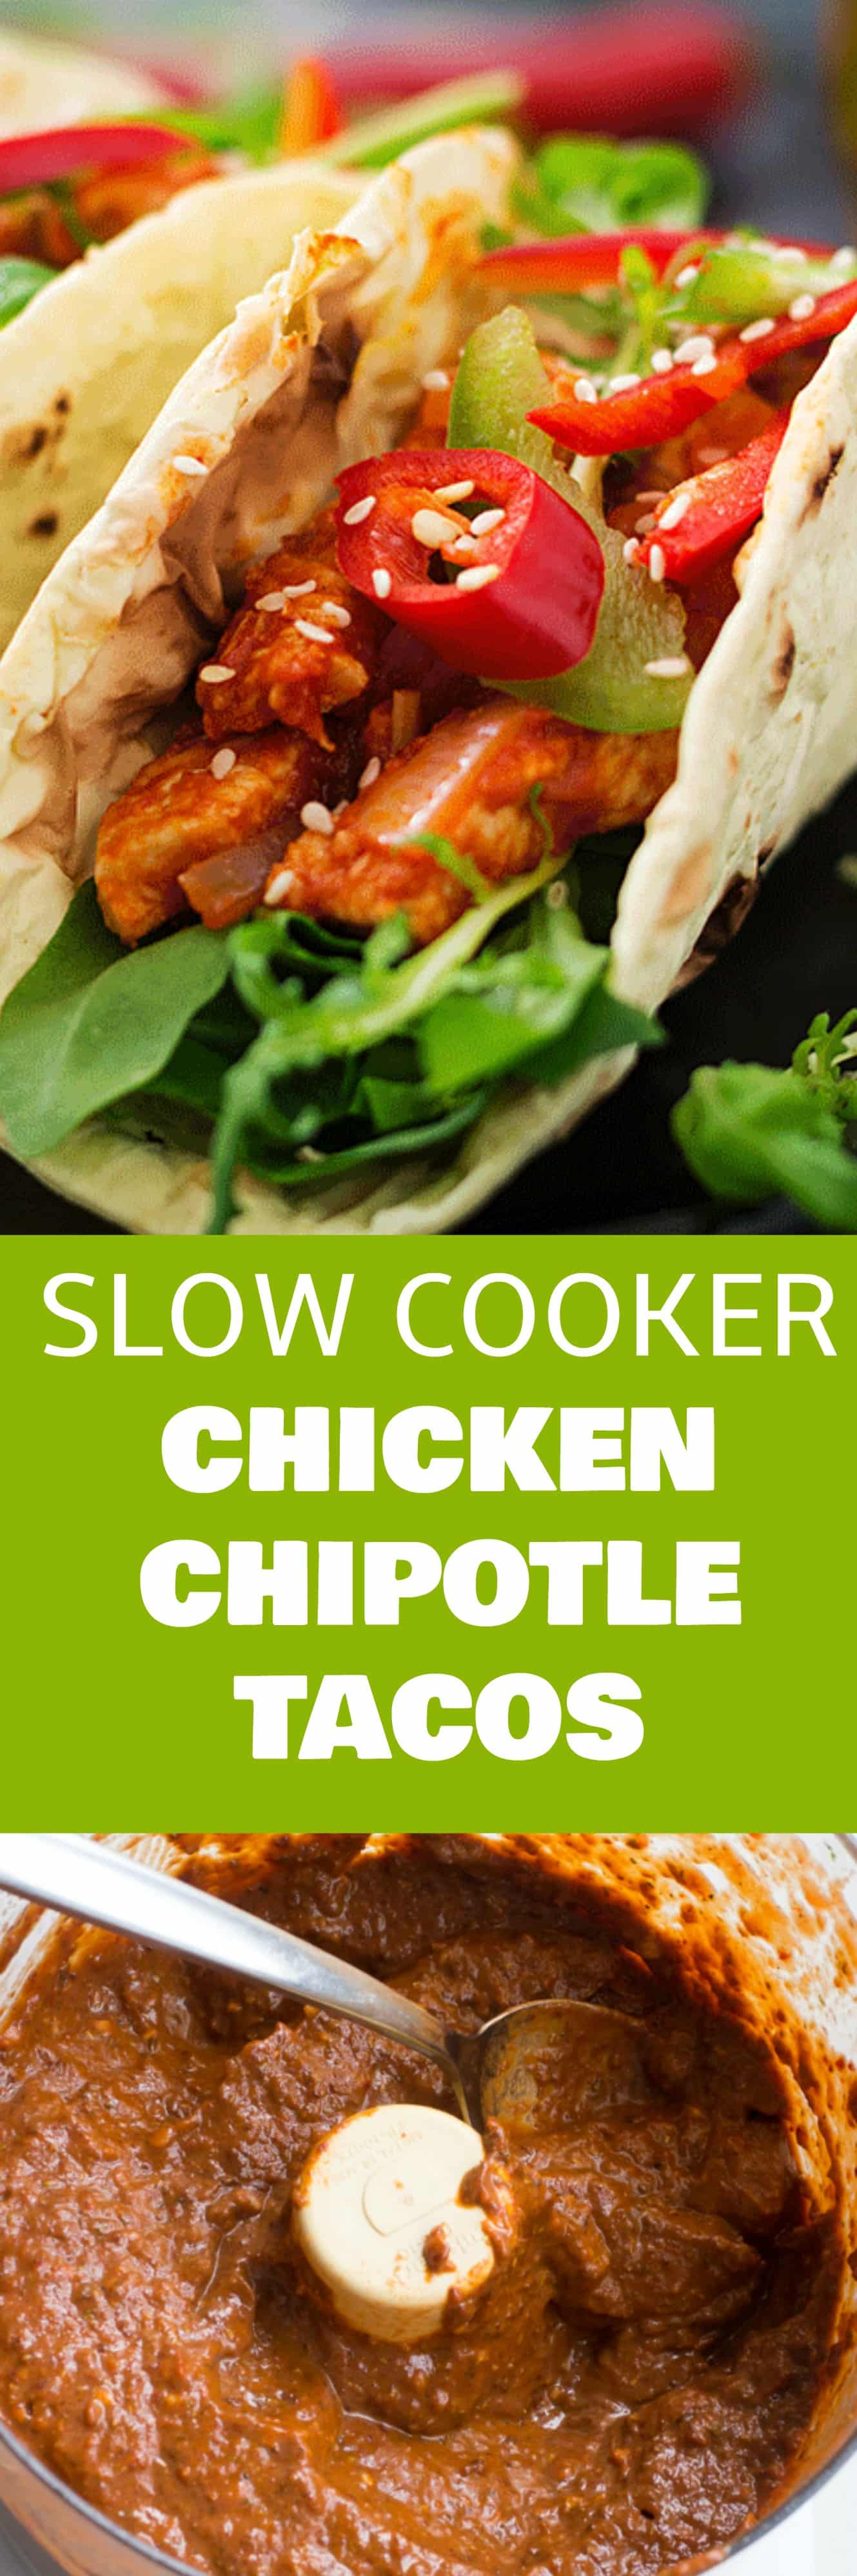 FAMILY FAVORITE Slow Cooker Chicken Chipotle Tacos! These shredded chicken tacos are made in the crockpot in a chipotle sauce marinade! This recipe is easy to make and is ready in 10 on low or 5 hours on high. They are our favorite authentic Mexican tacos!